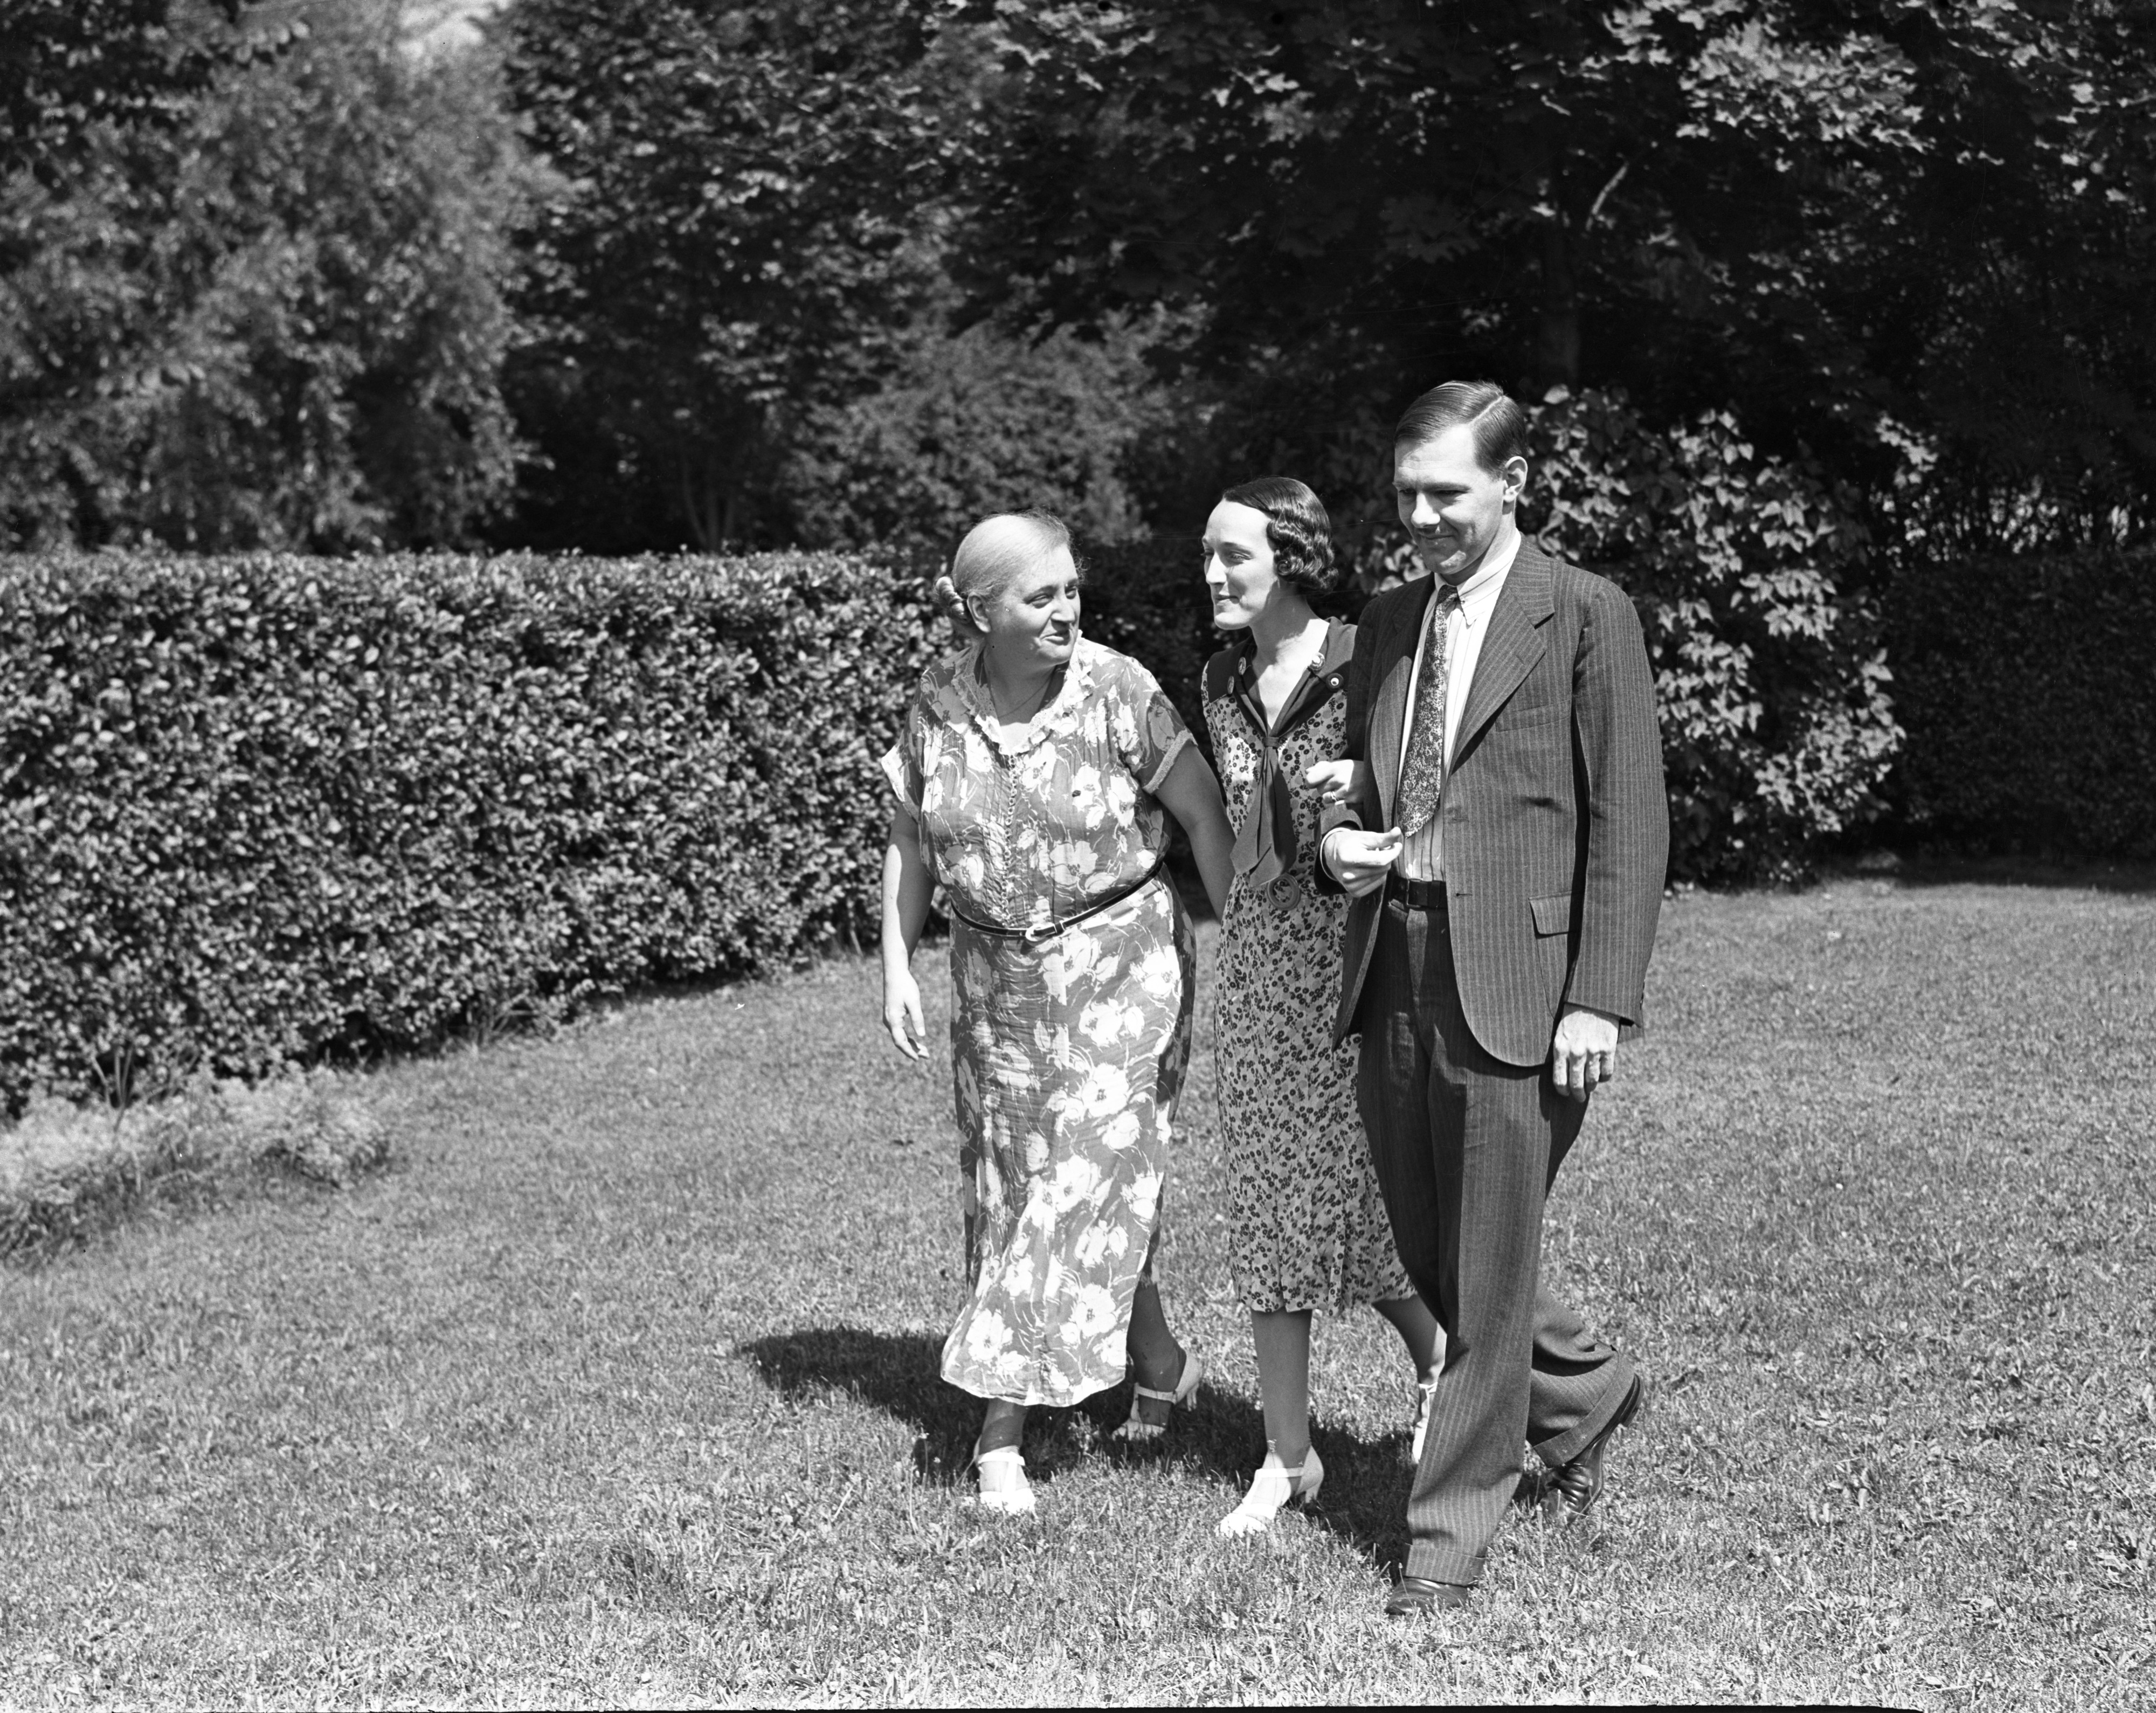 Guests of Professor Julio Del Toro and wife Marguerite, 1938 image